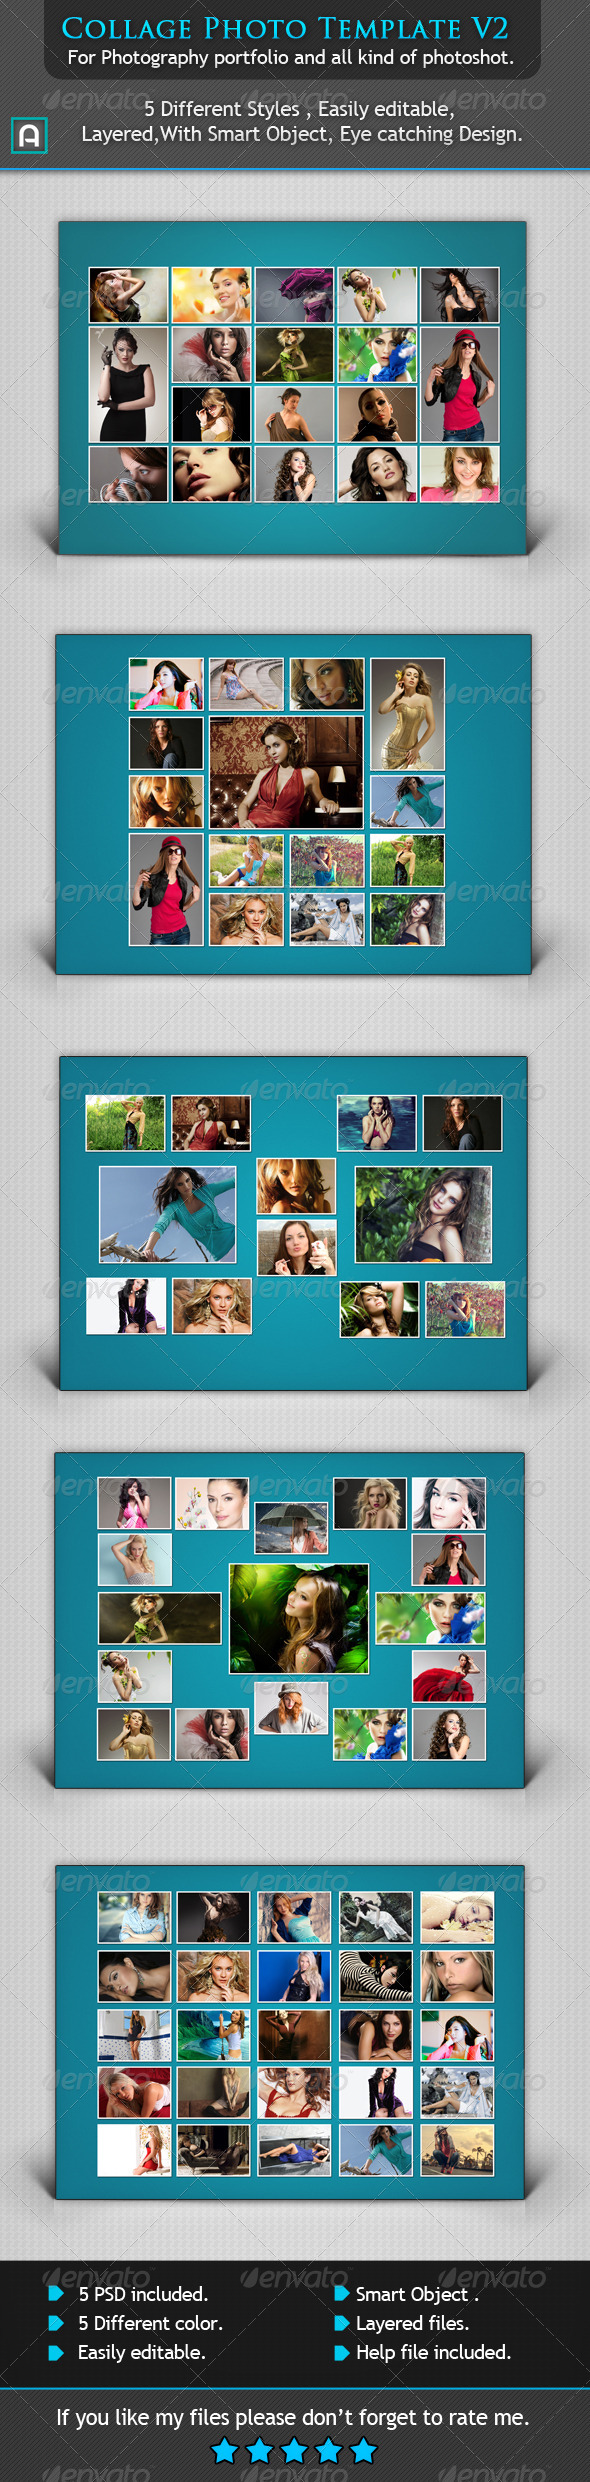 GraphicRiver Collage Photo Template V2 6717719